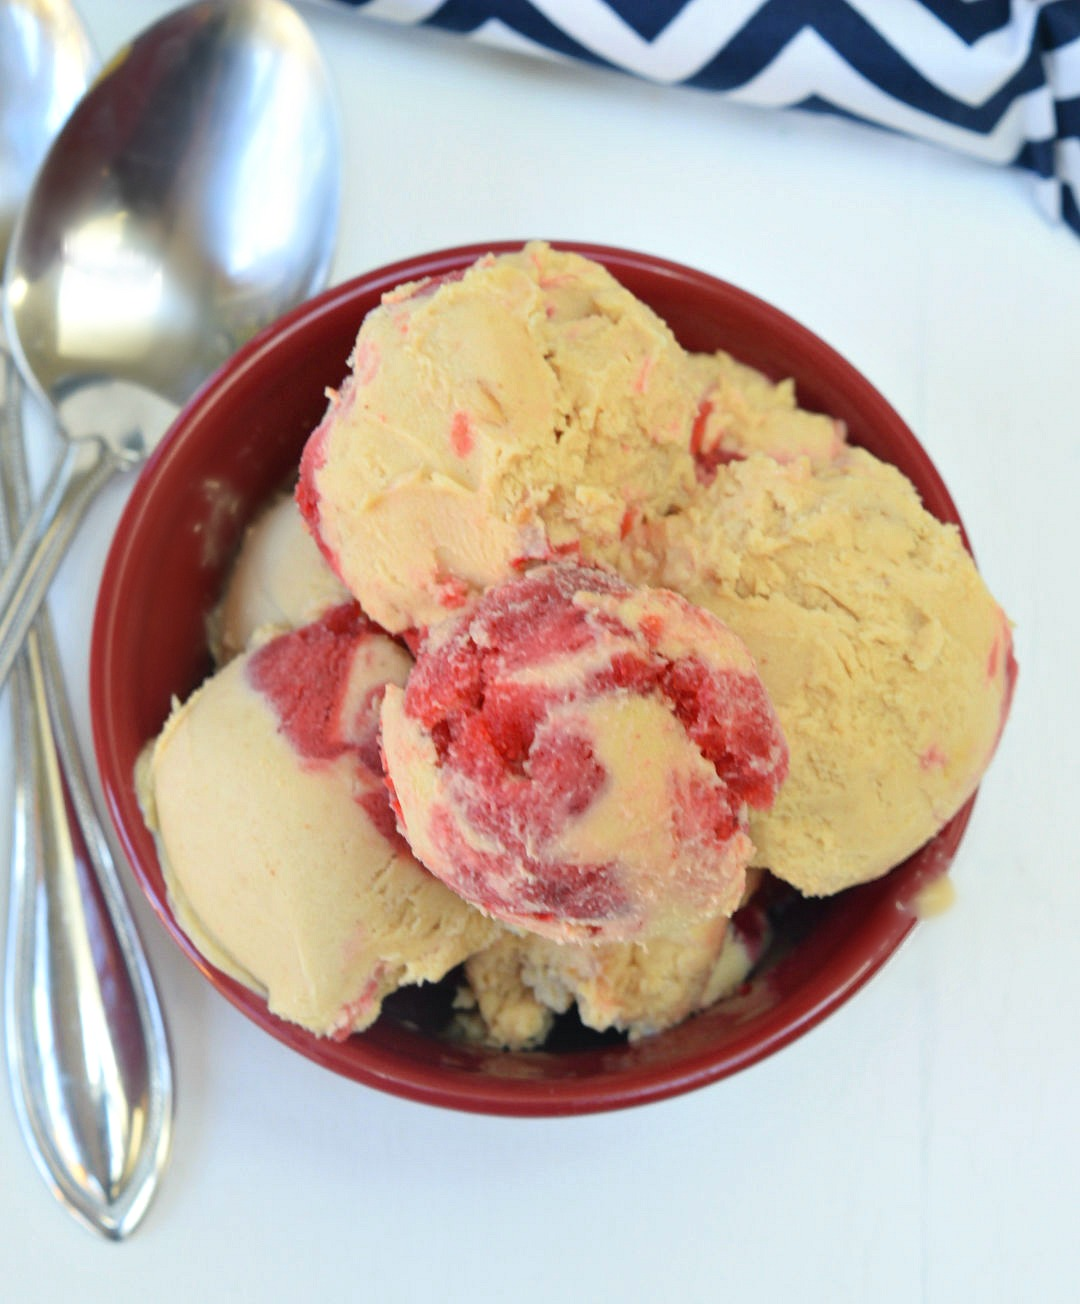 bowl of no churn ice cream